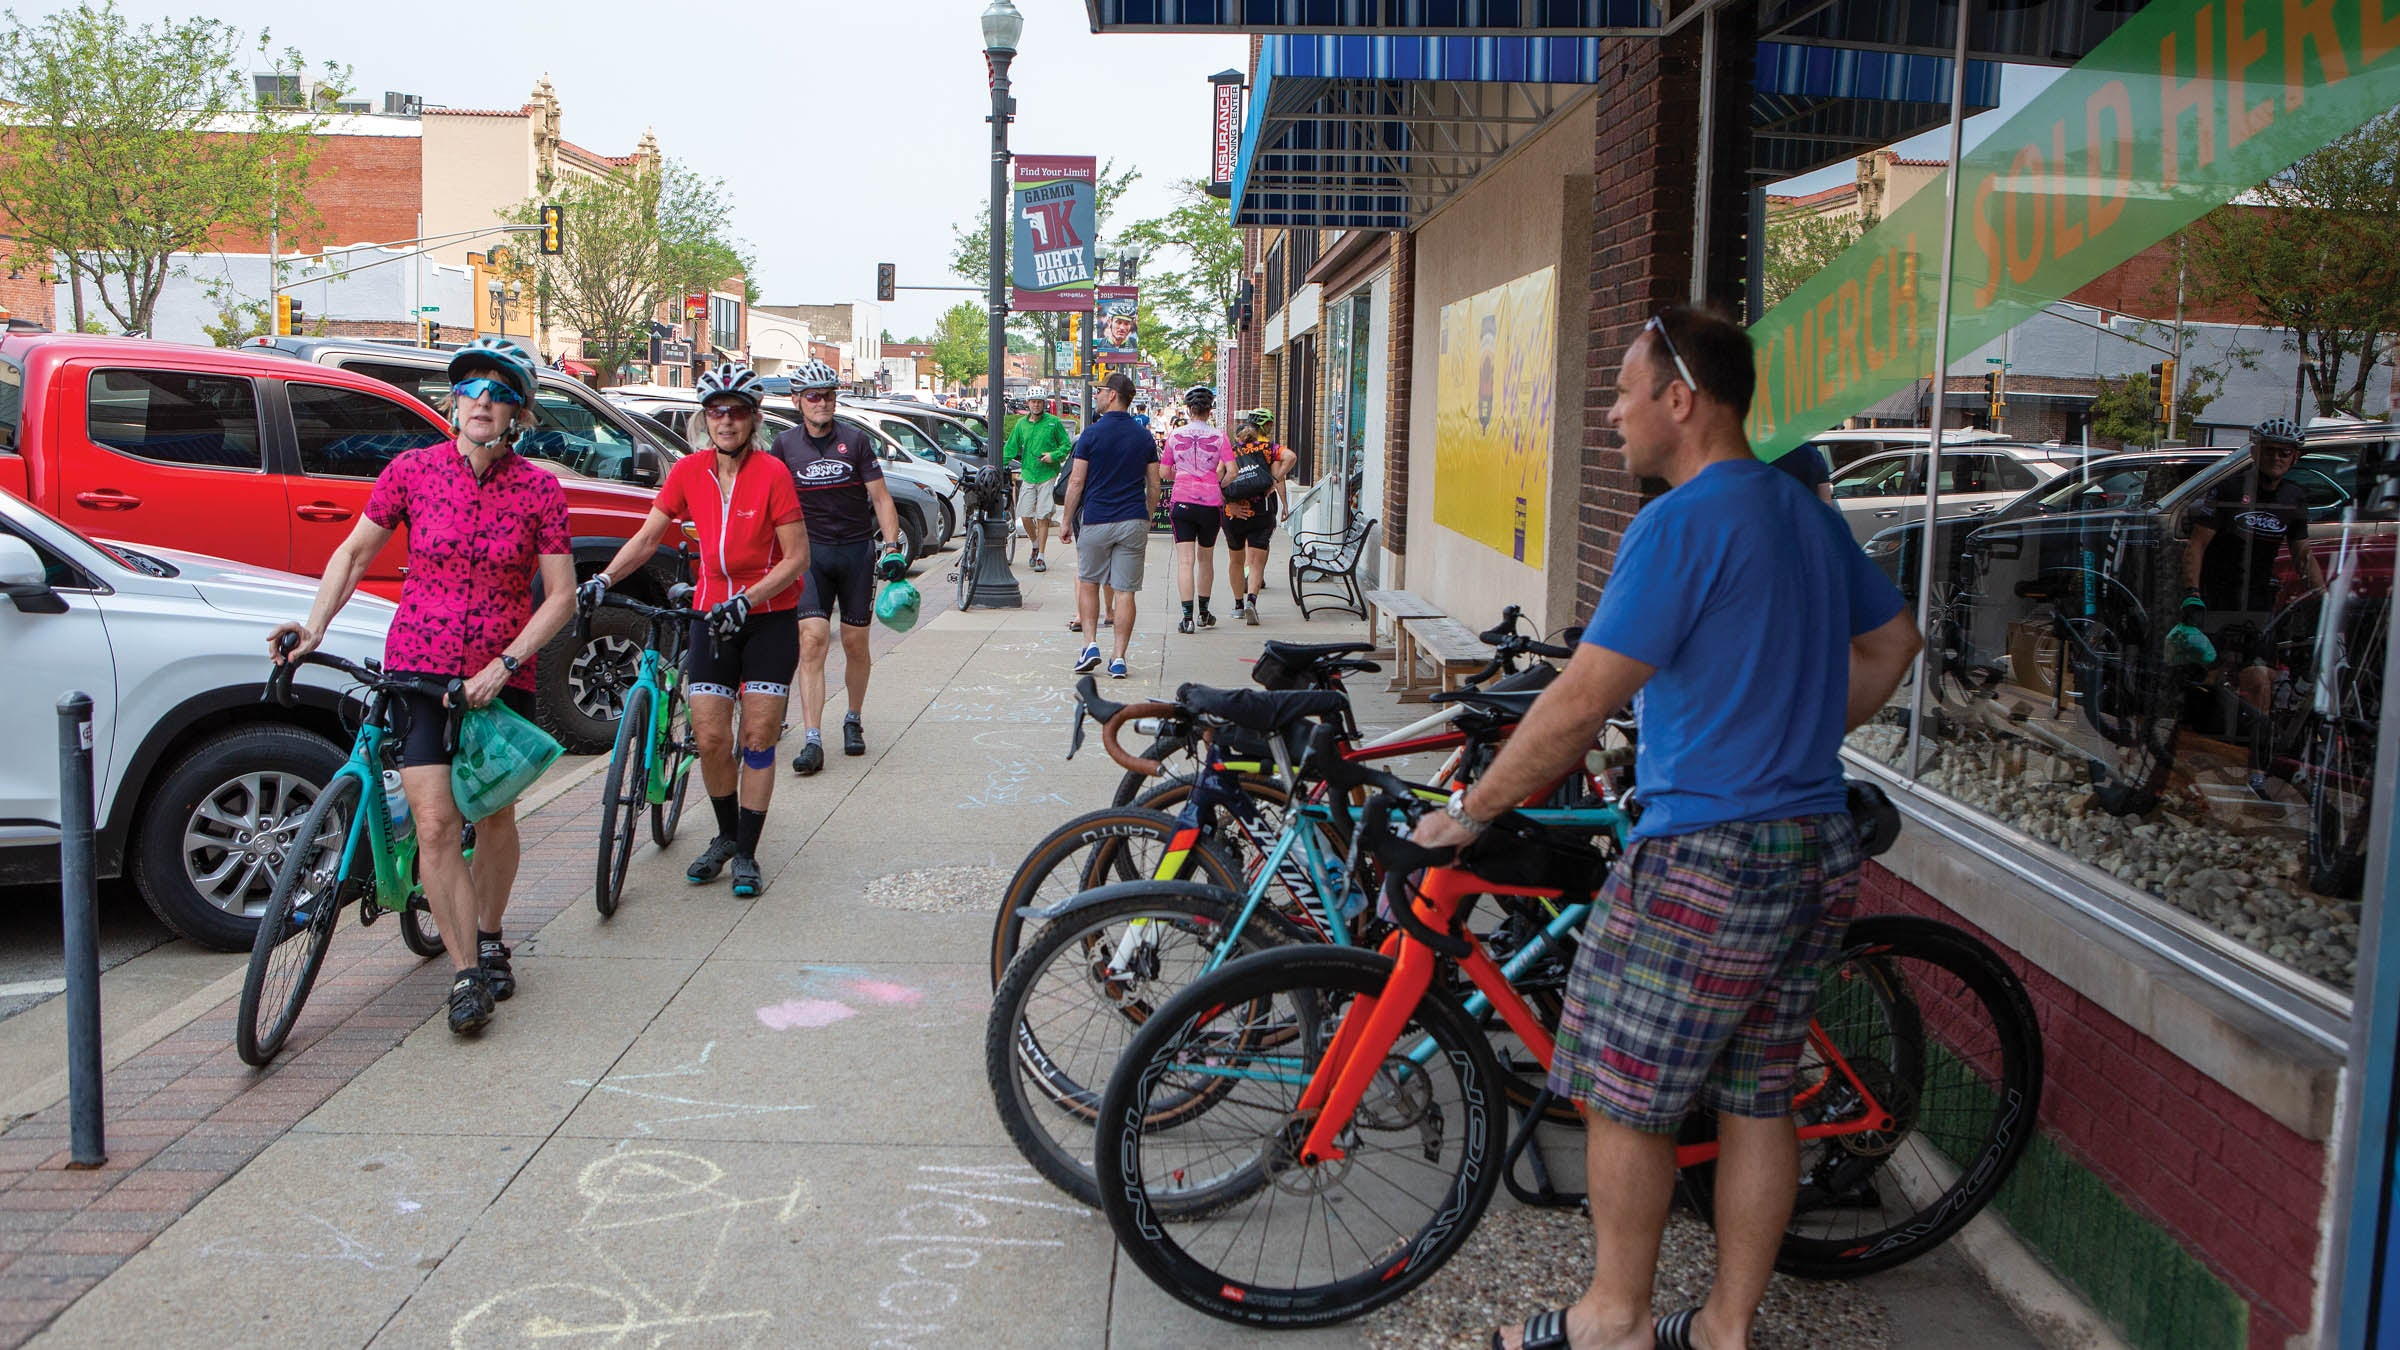 Cyclists line up their bikes outside a storefront in a small downtown area